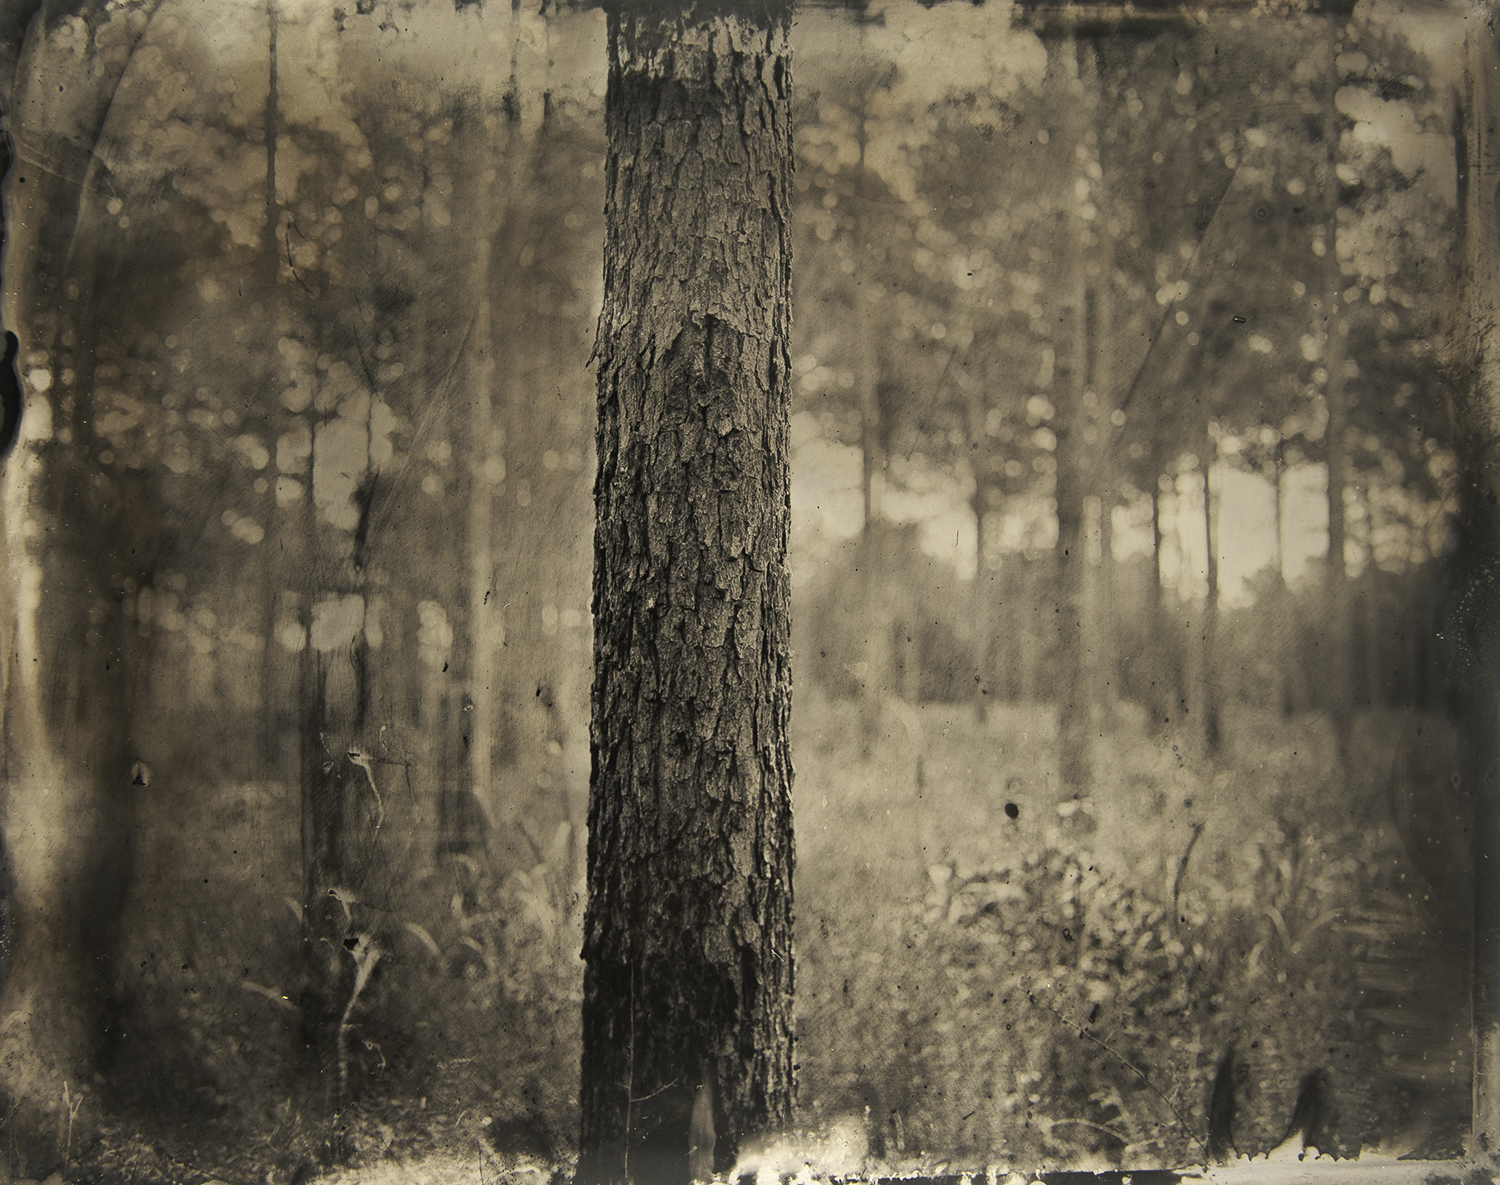 Place of Sense(s), Pike County, GA, 2019, tintype.